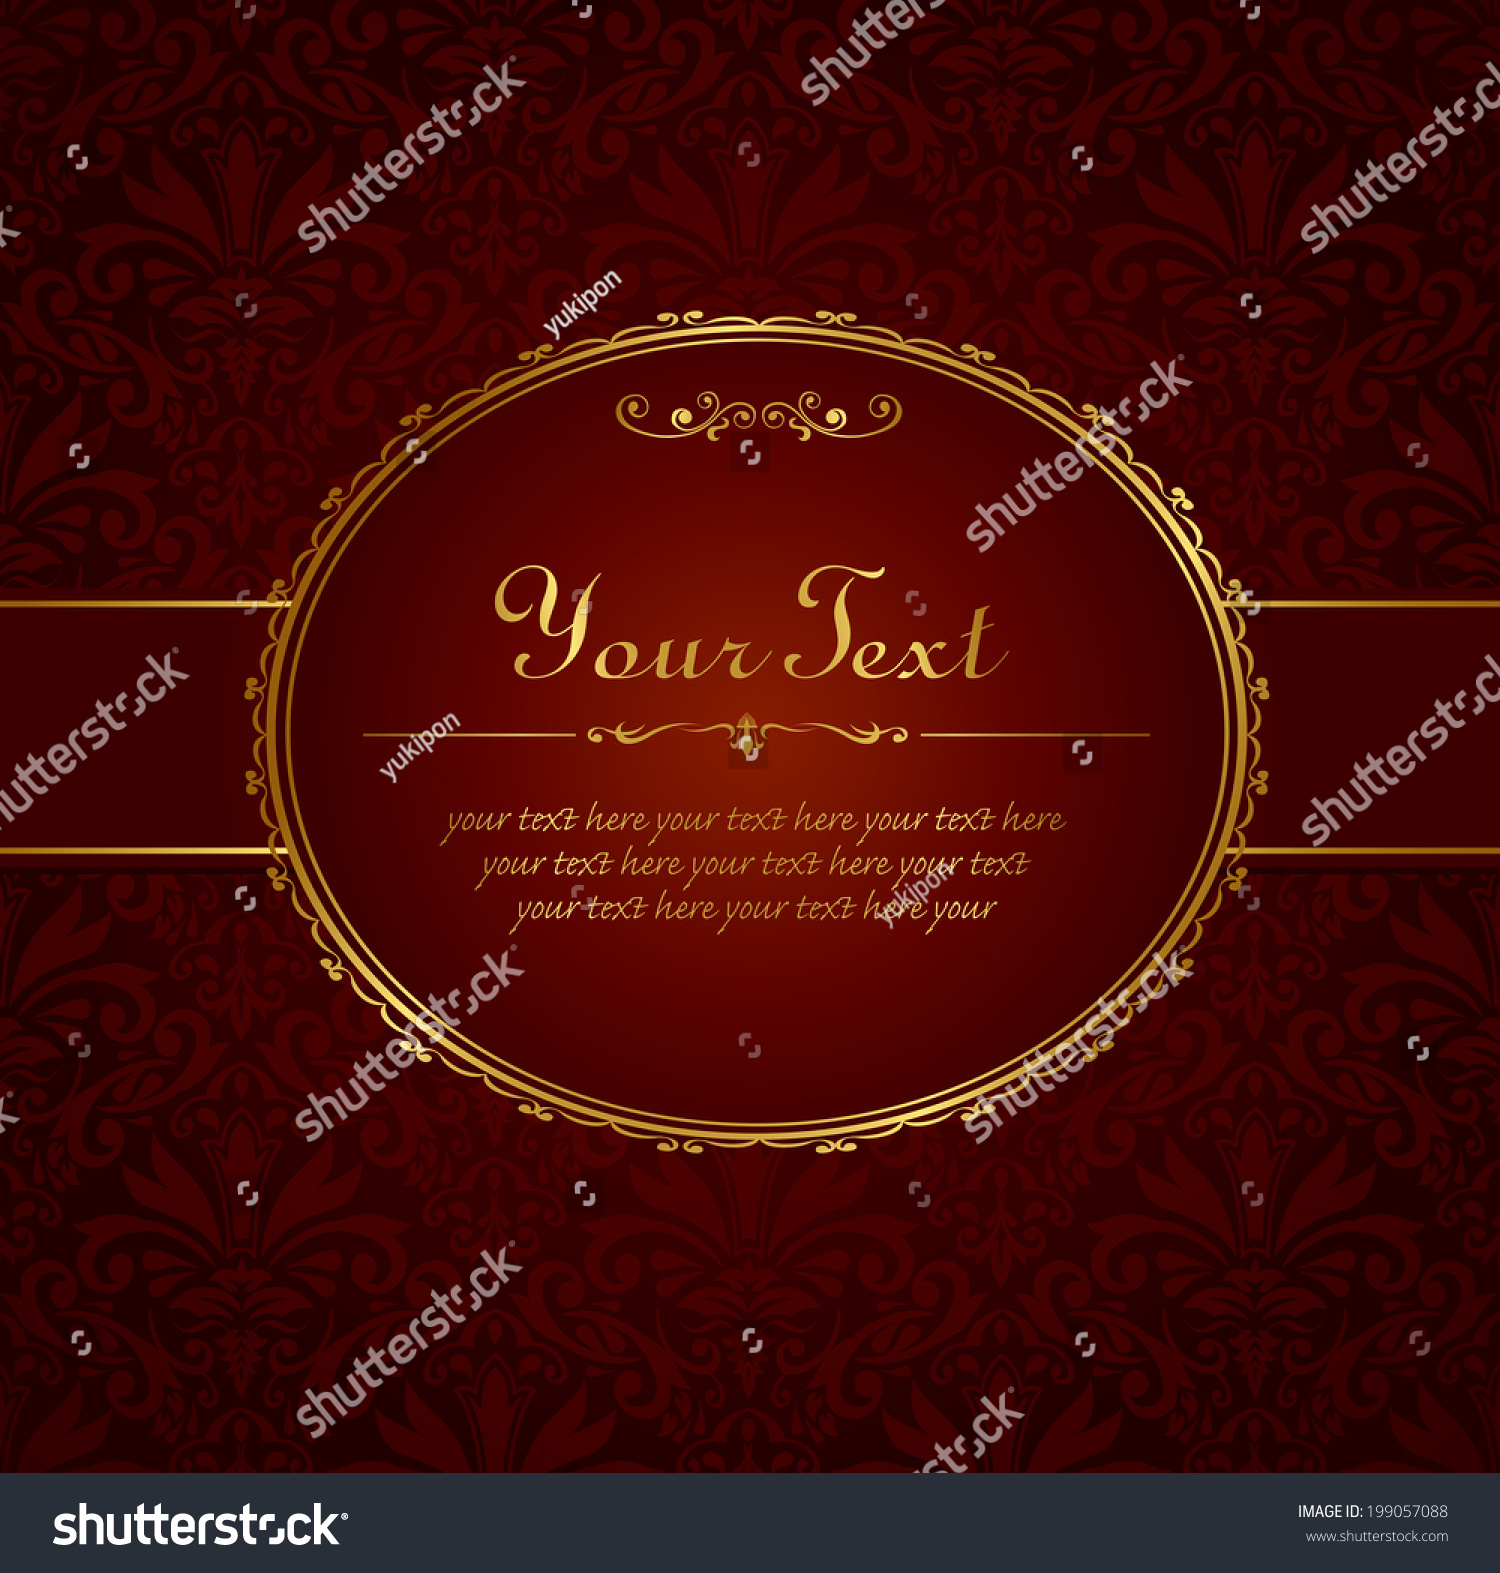 Invitation vintage label vector frame stock vector 199057088 invitation vintage label vector frame stopboris Image collections